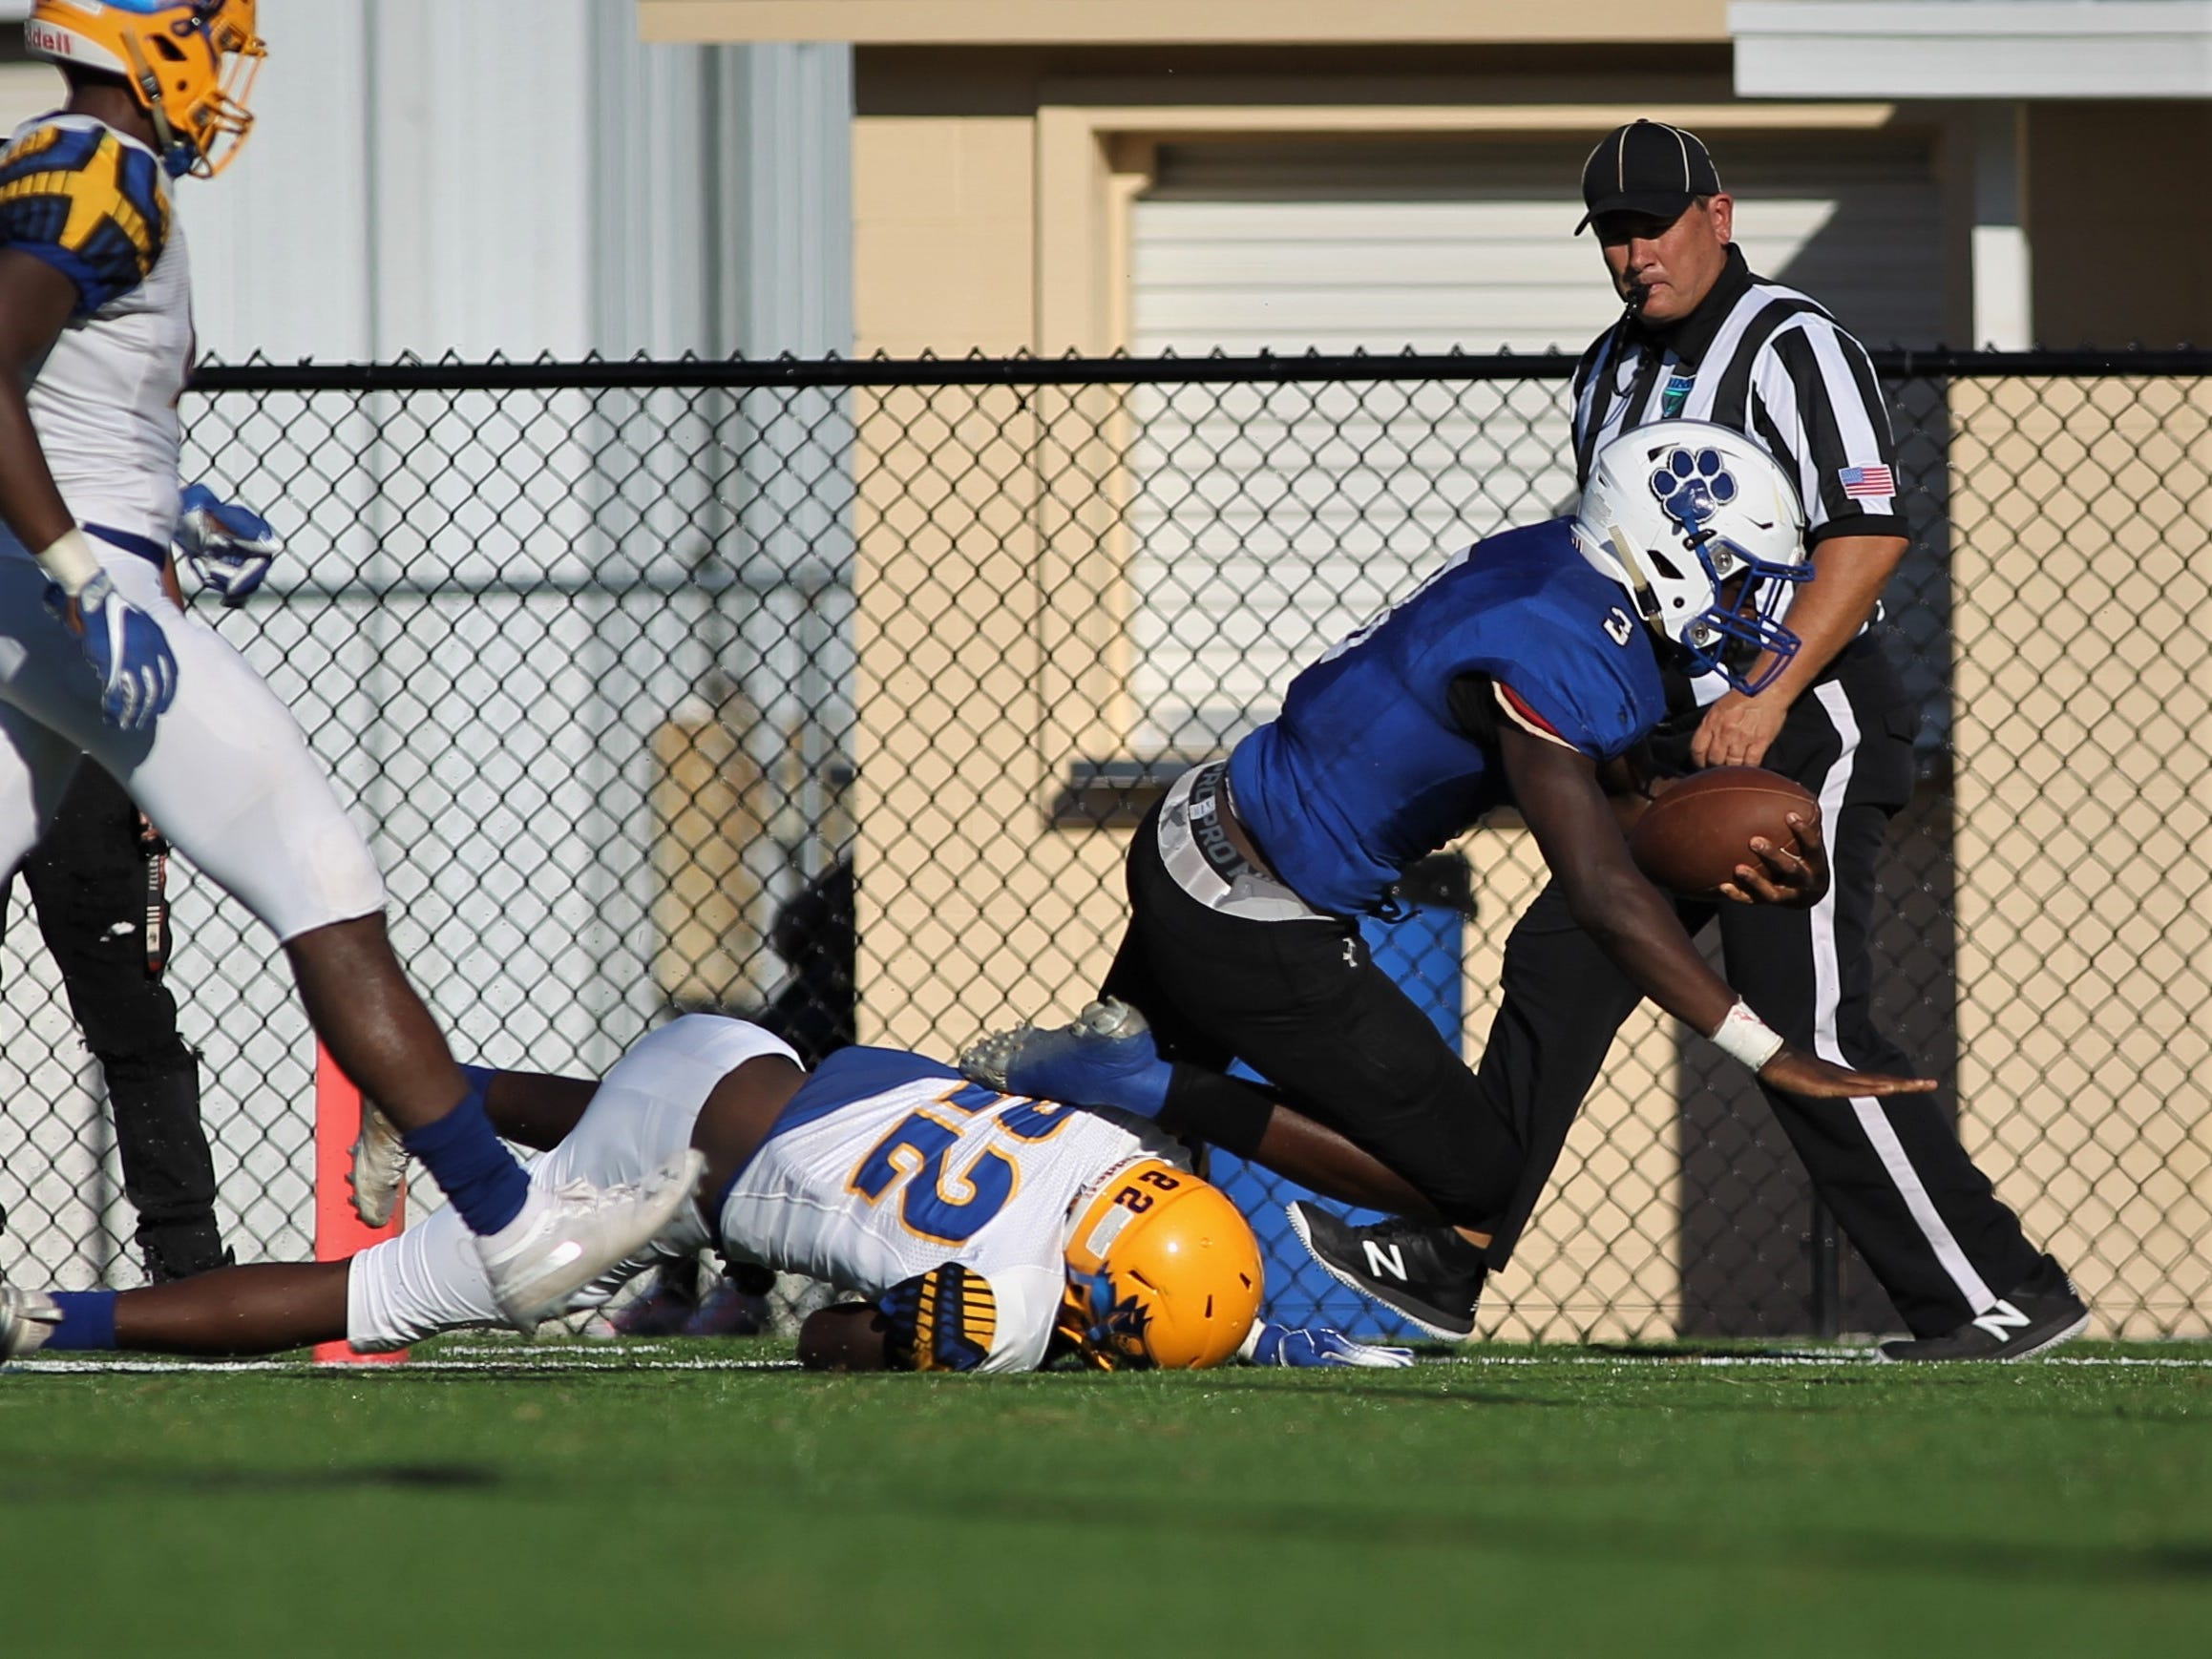 Godby running back Jaquez Yant busts a 20-yard touchdown run against Rickards.